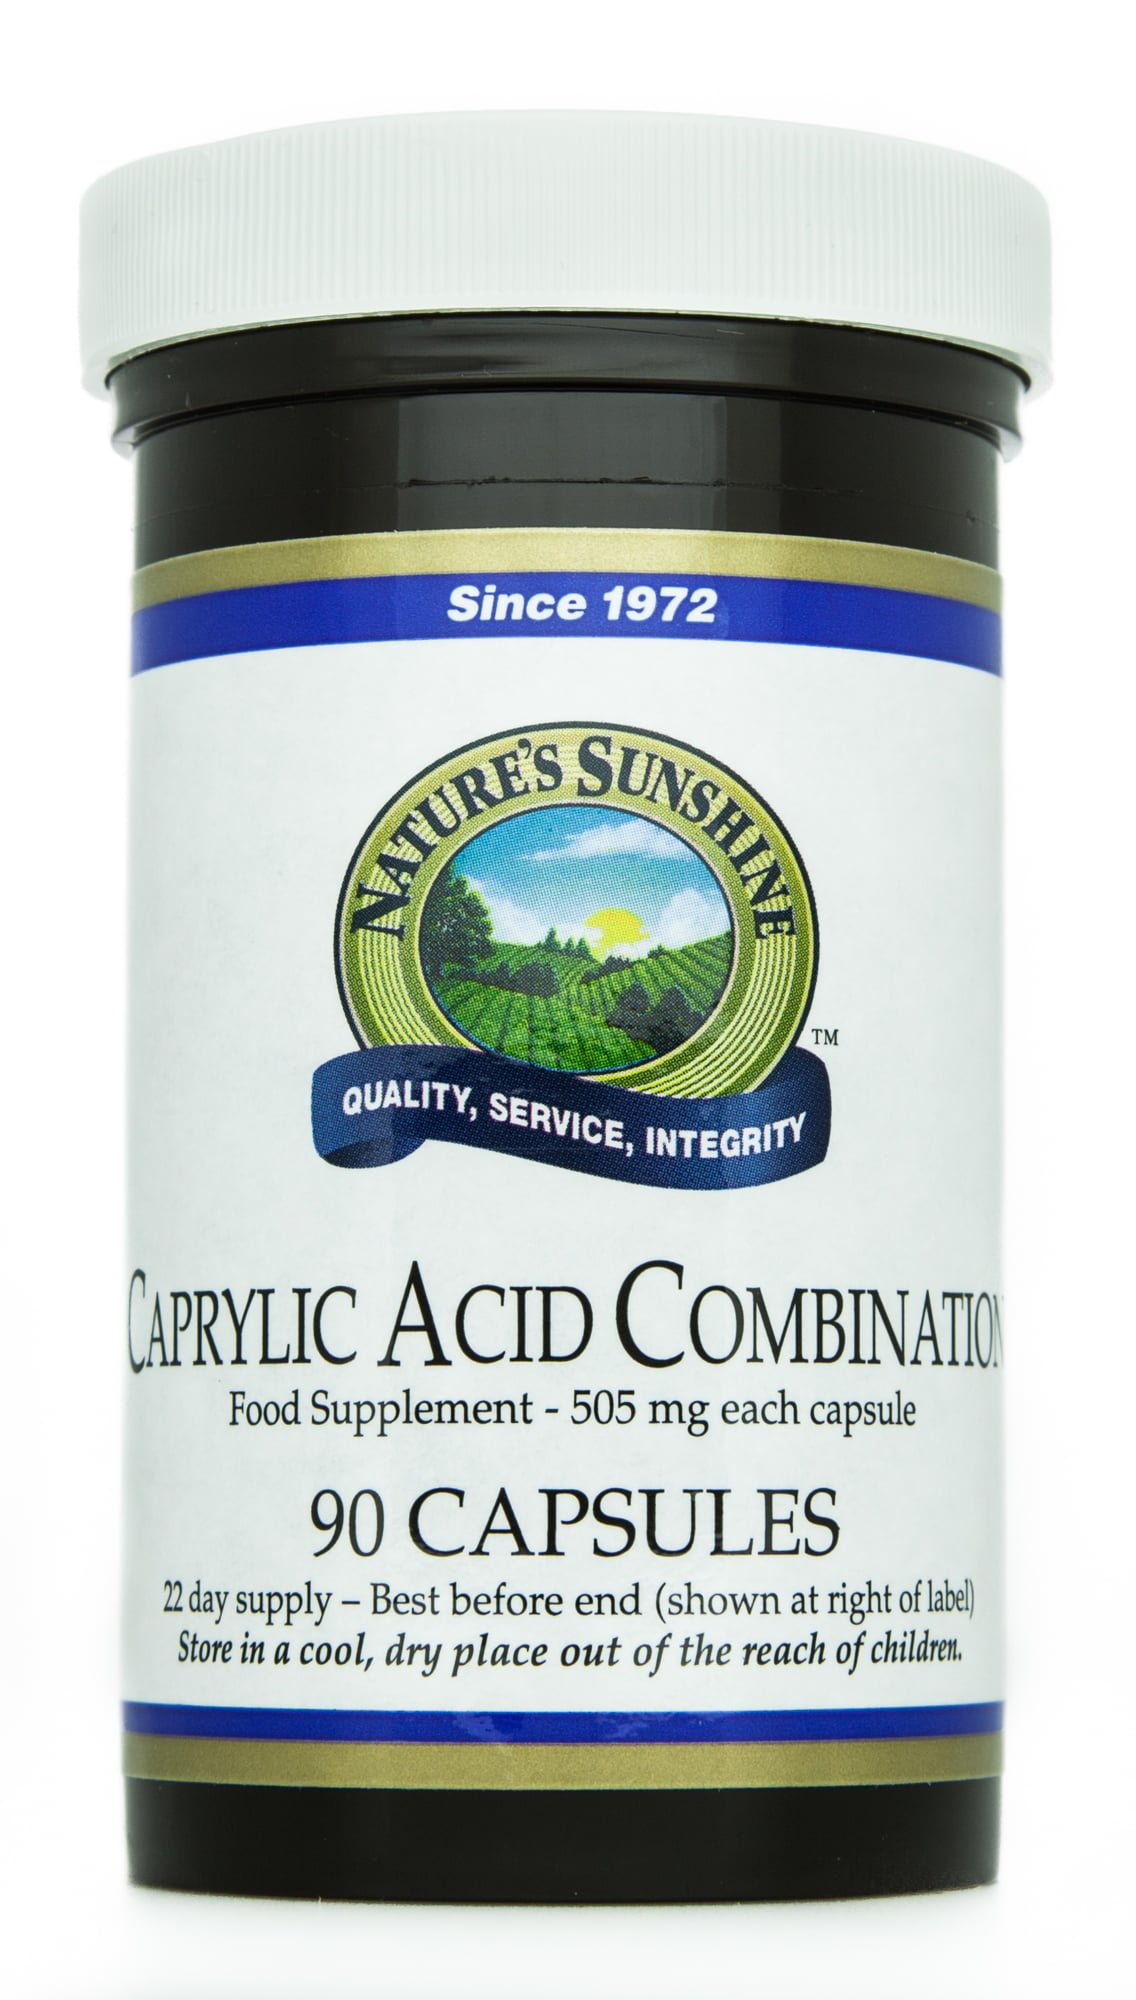 Caprylic Acid Combination Product Available For Candida